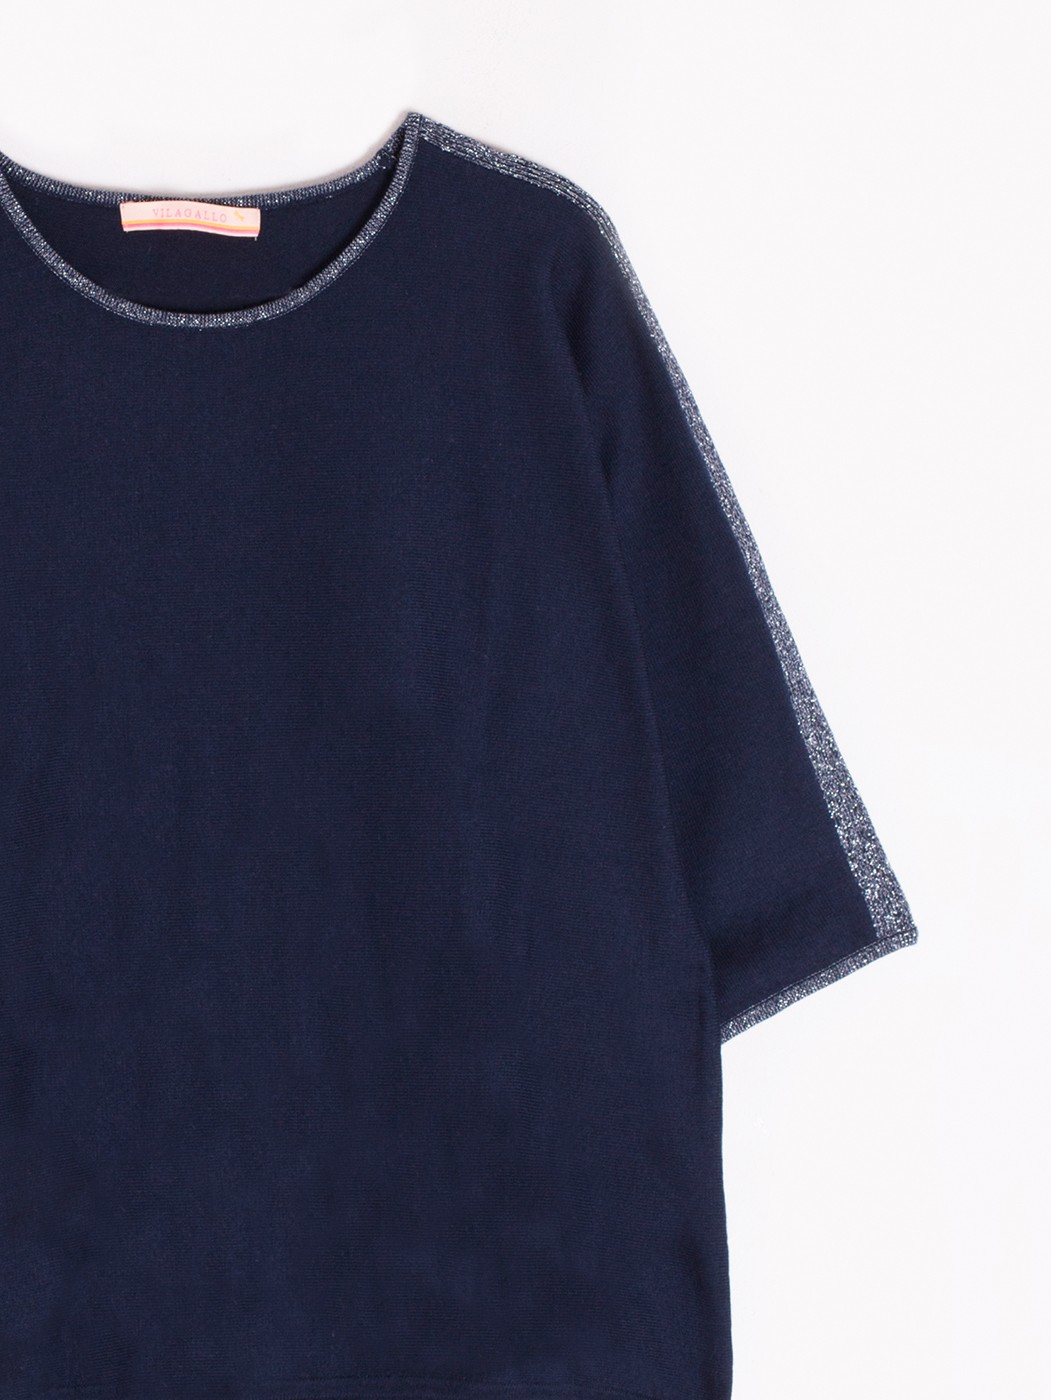 MIRIAN KNITWEAR IN NAVY